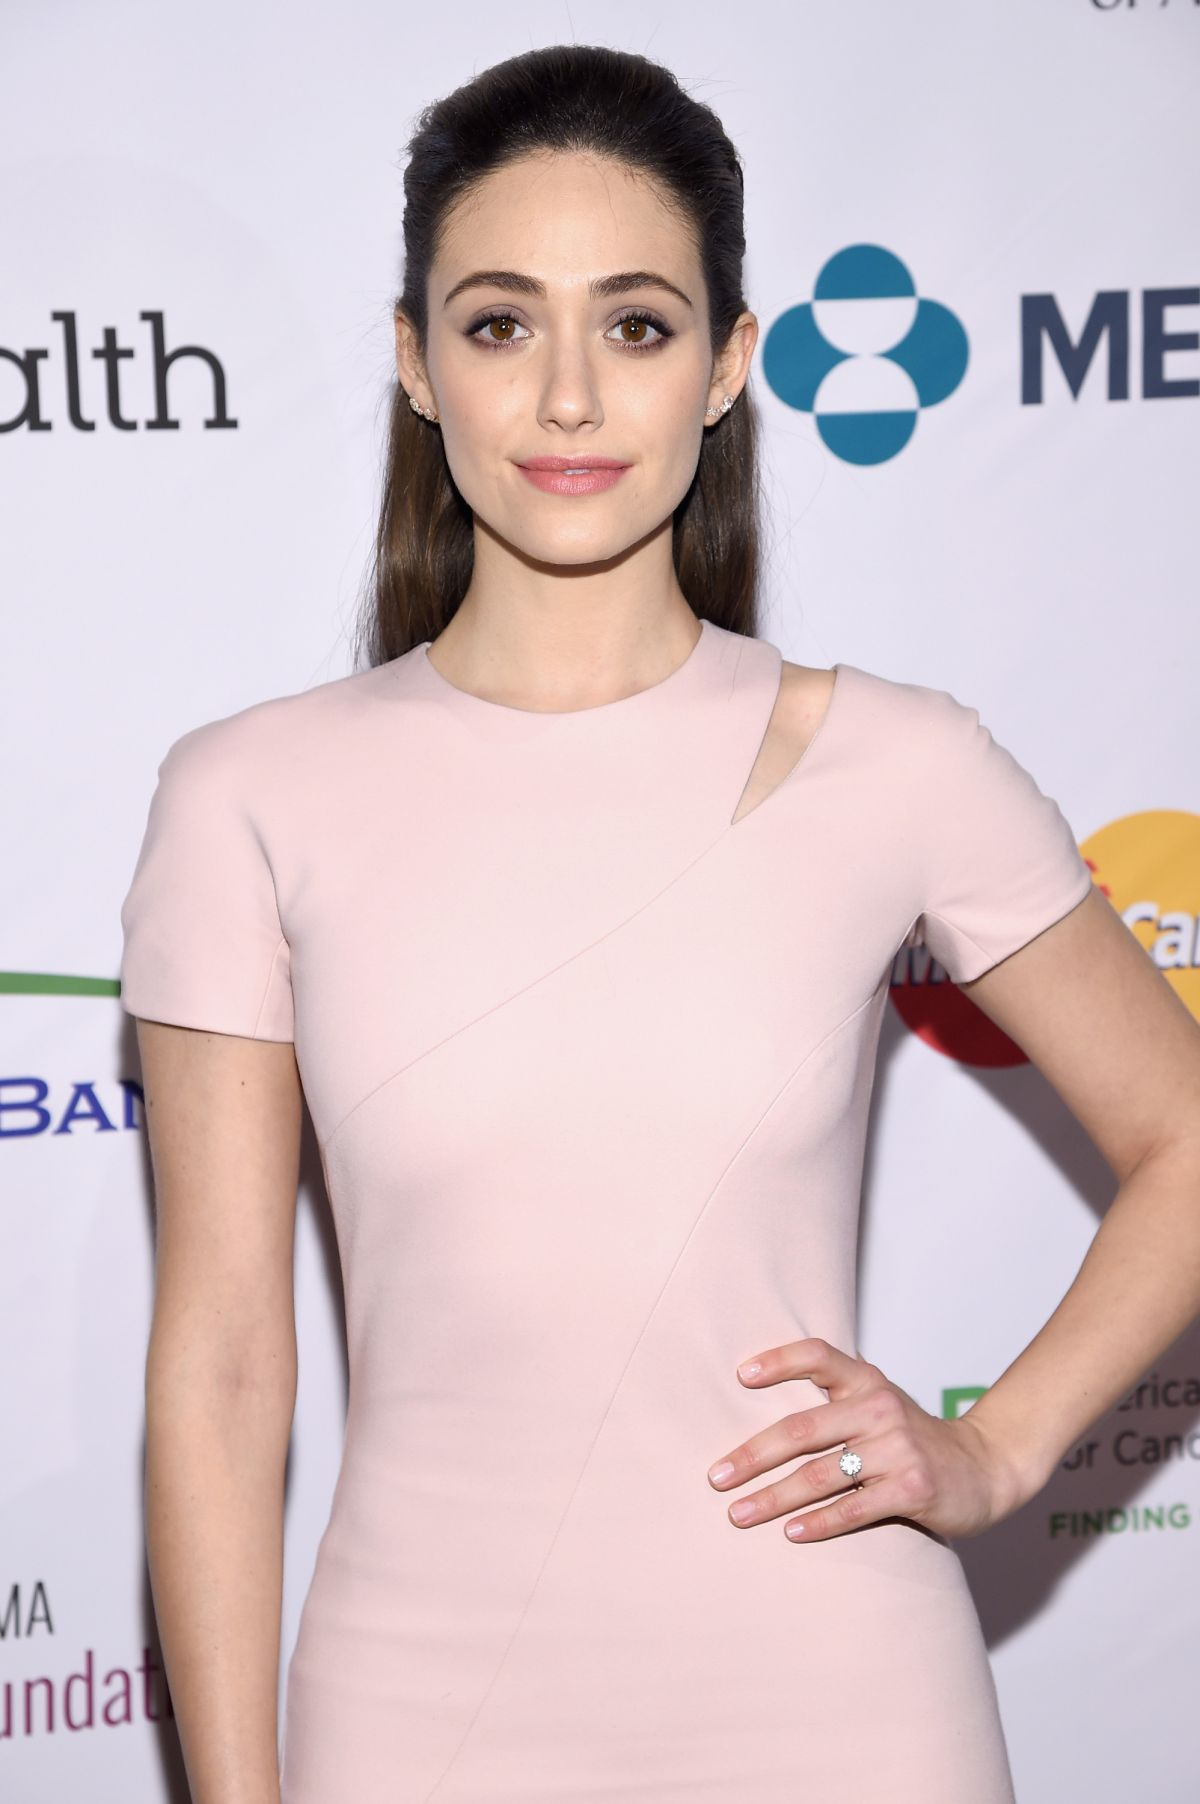 EMMY ROSSUM at Stand Up to Cancer's NY Standing Room Only Evenet 04/09/2016